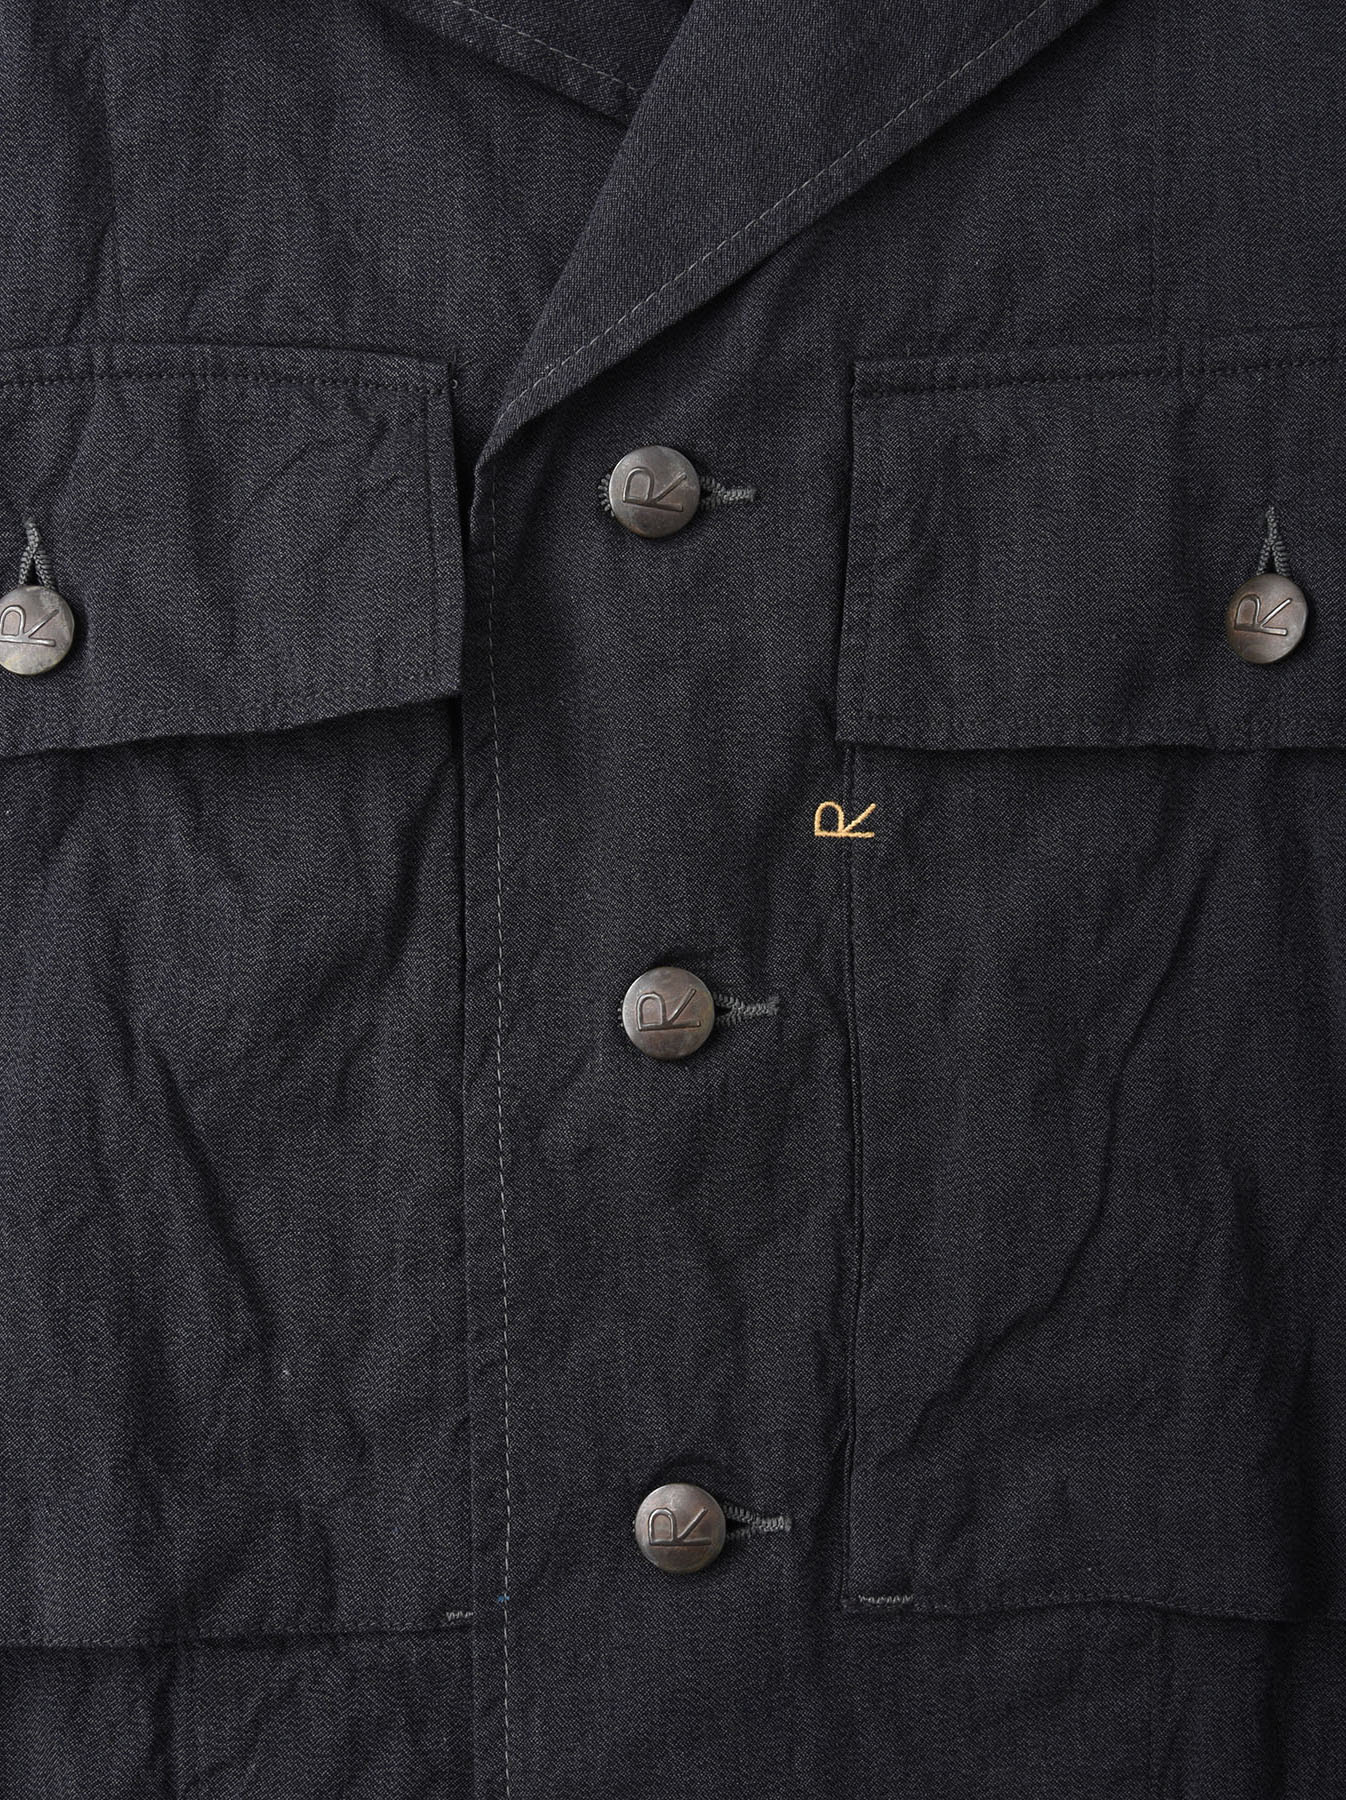 WH Grandrelle 908 Military Coverall-10